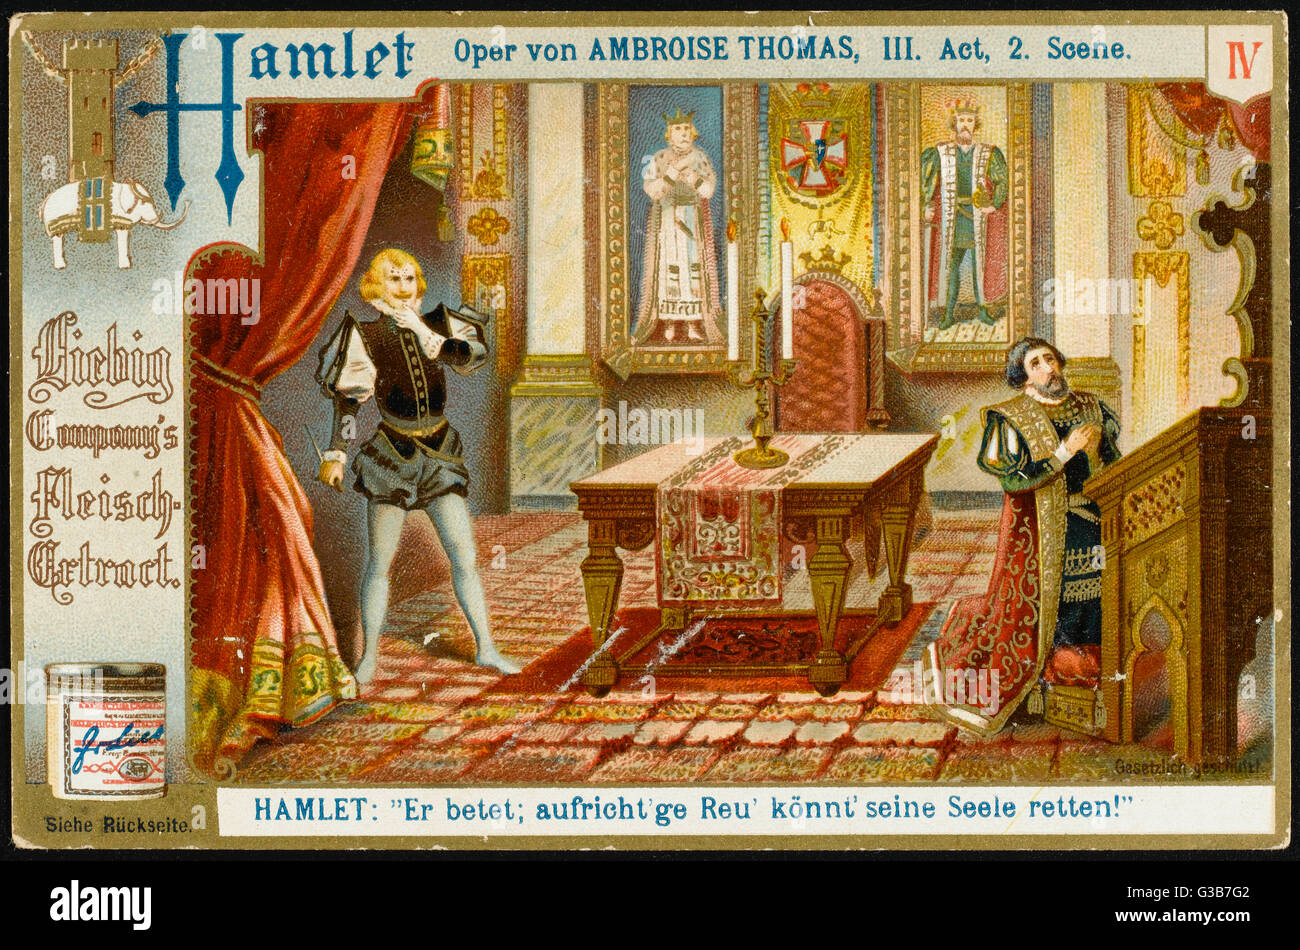 Act 3 scene 2 : Hamlet finds  Claudius at prayer, and is  reluctant to kill him when he  is in a state of grace. - Stock Image